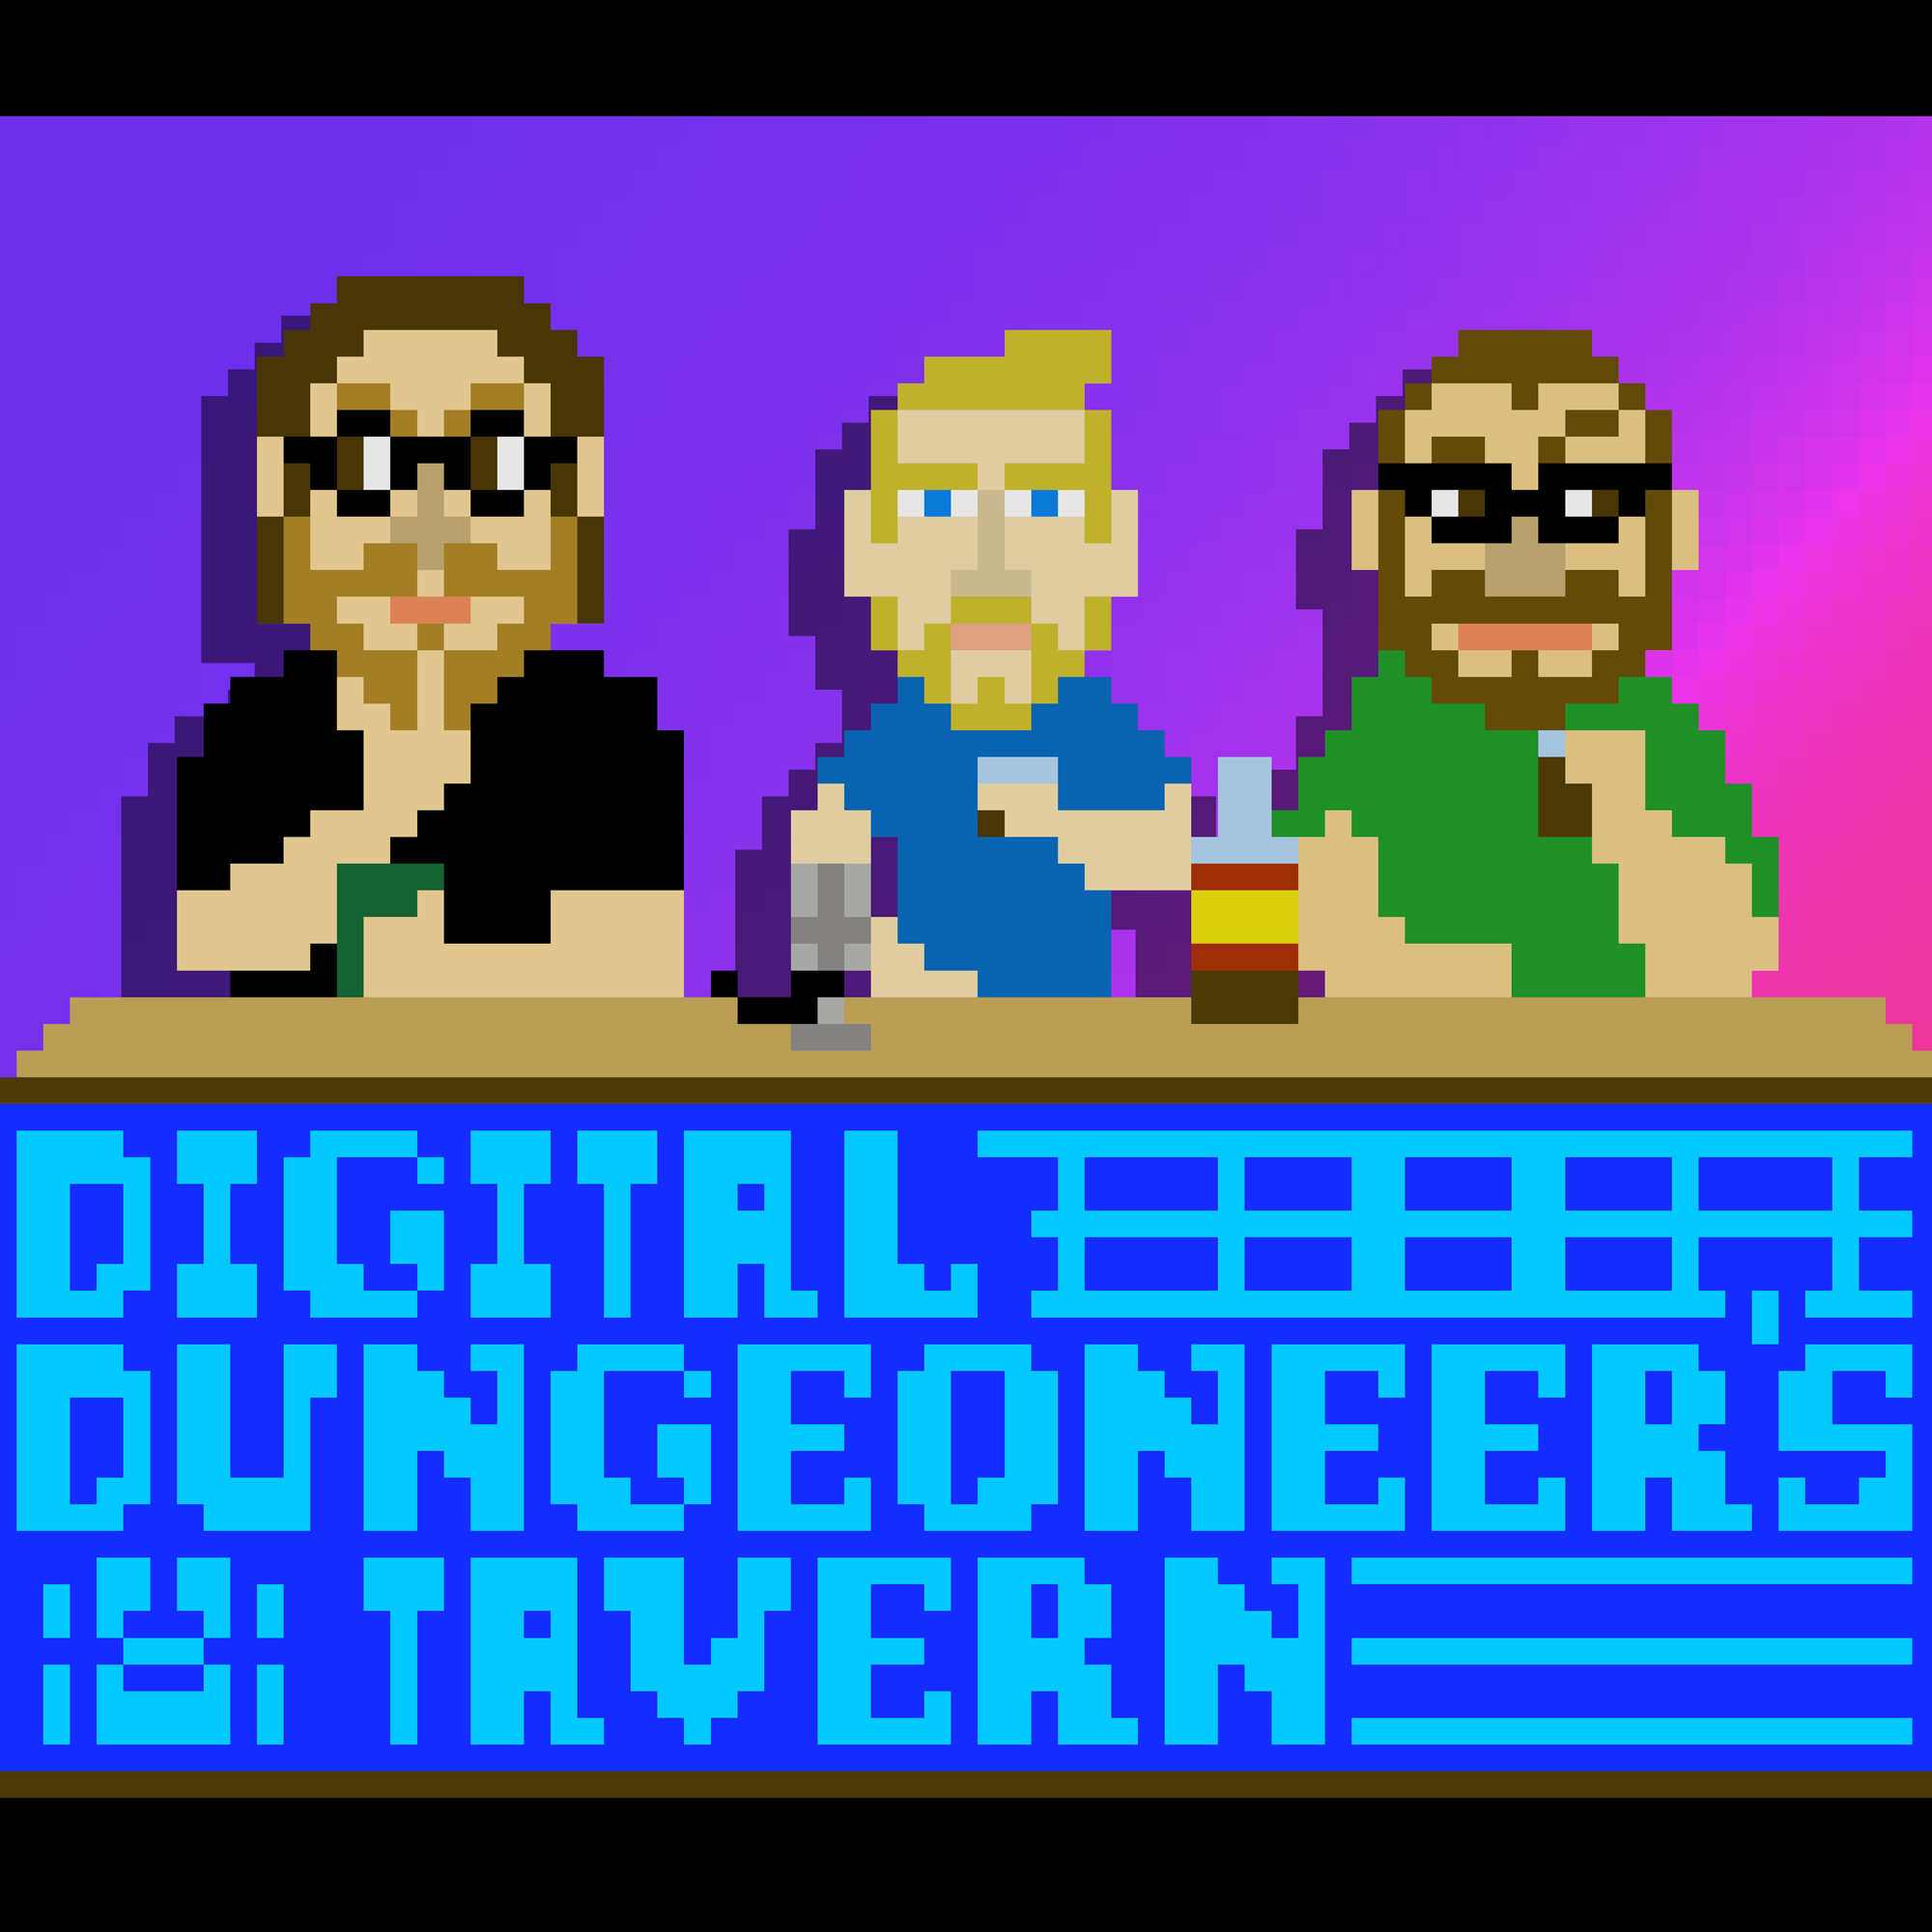 DIGITAL DUNGEONEER'S TAVERN